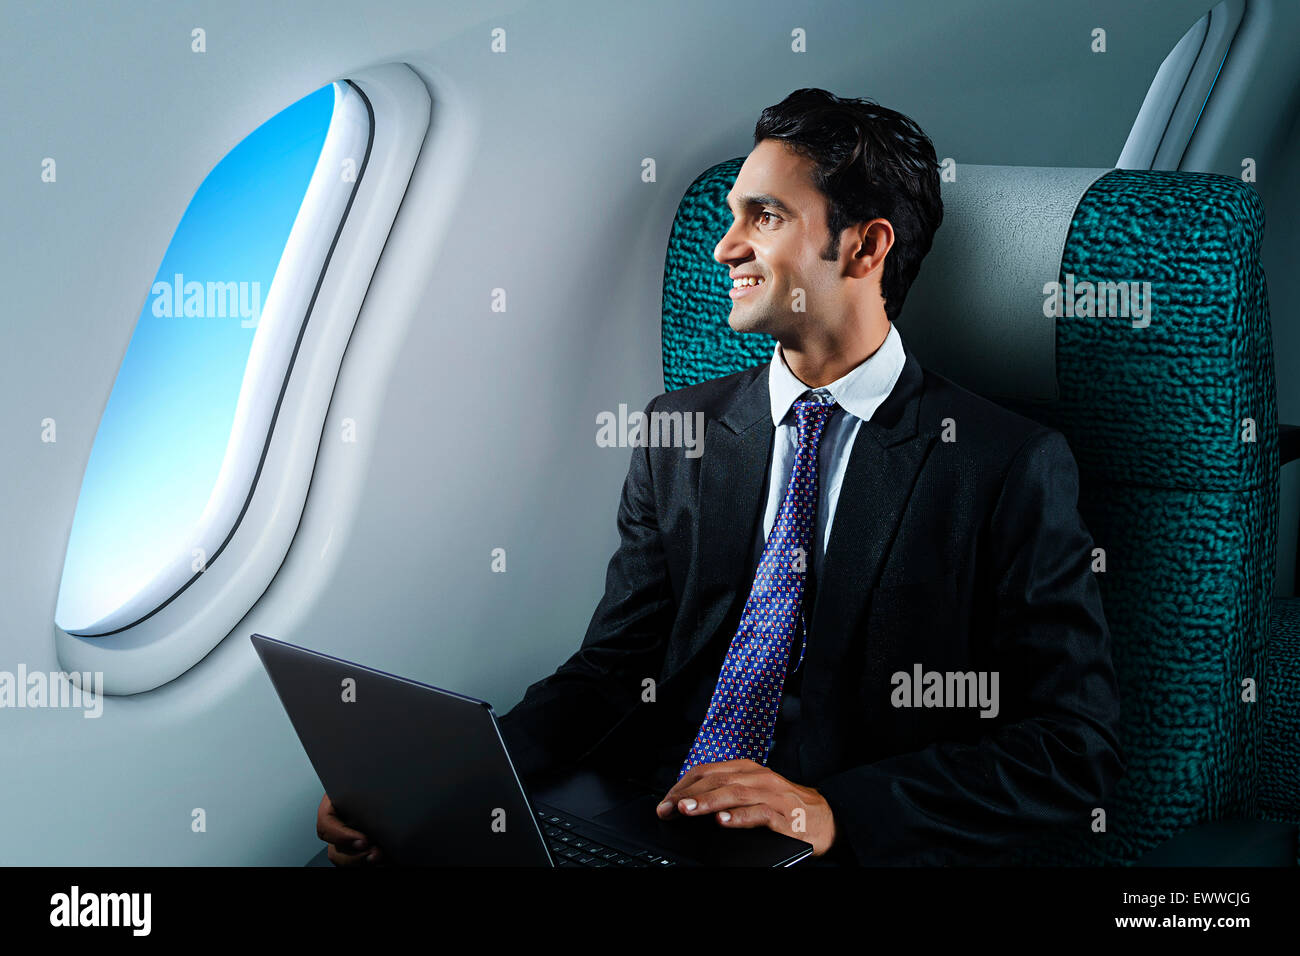 1 indian Business Man Sitting Airplane and laptop working